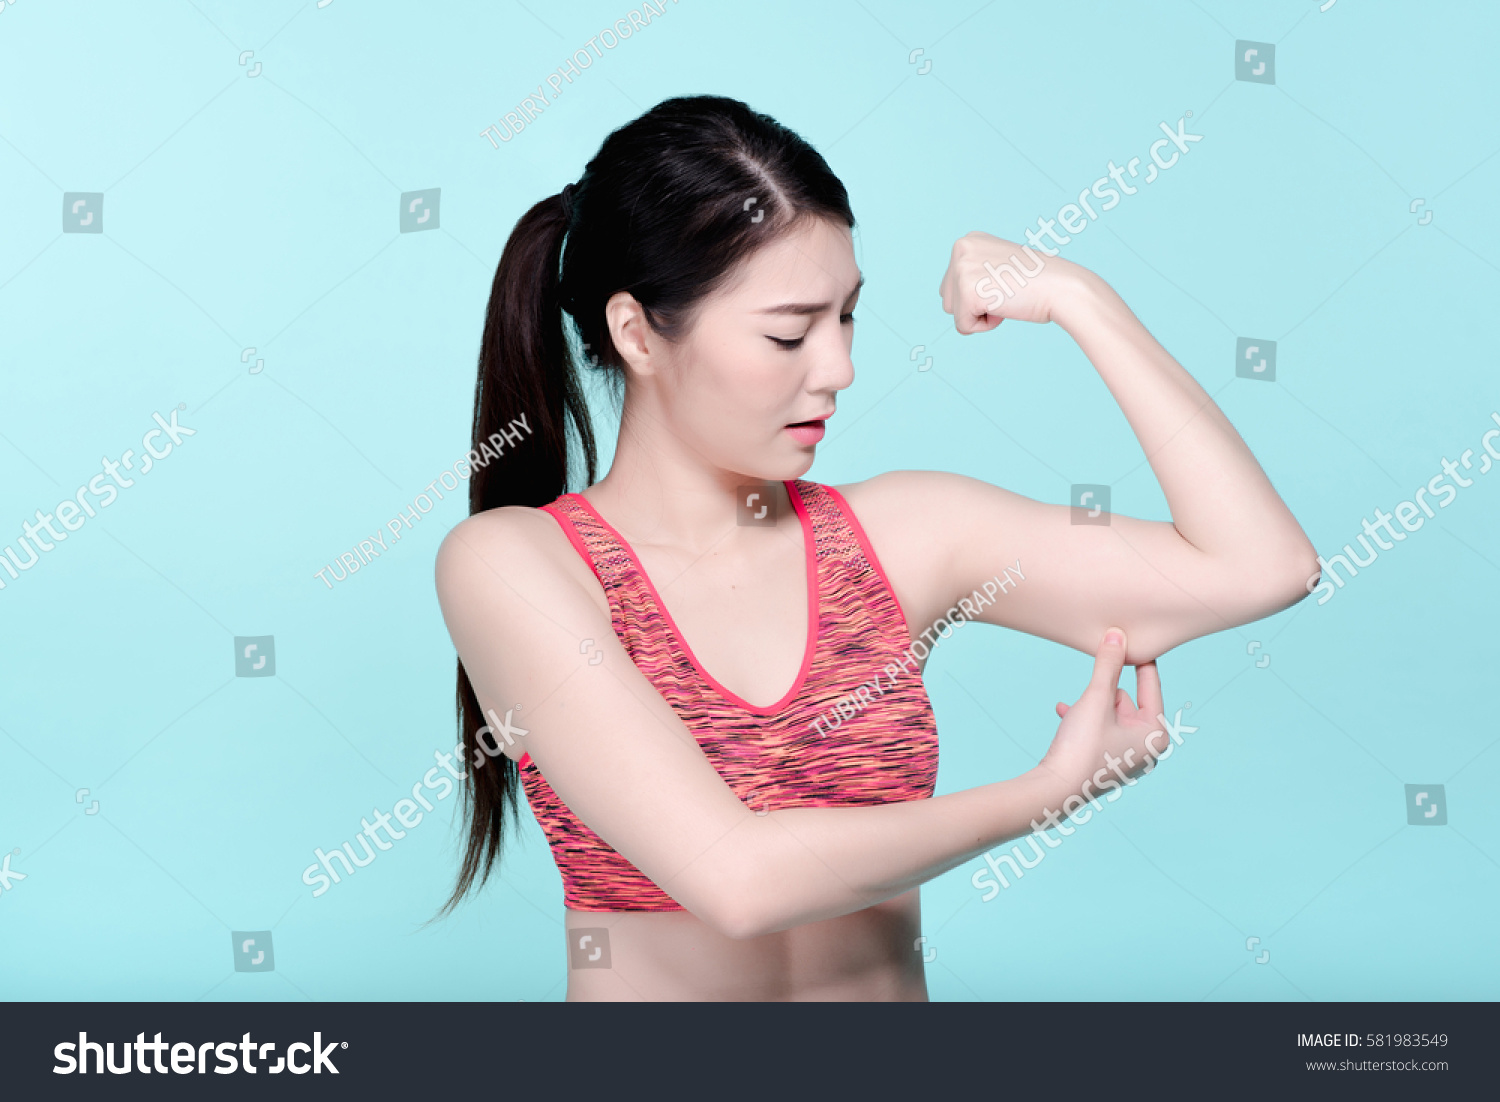 2b147b78a2151 Asian woman checking arm cellulite after workout. Beauty face and natural  makeup sports bra outfit